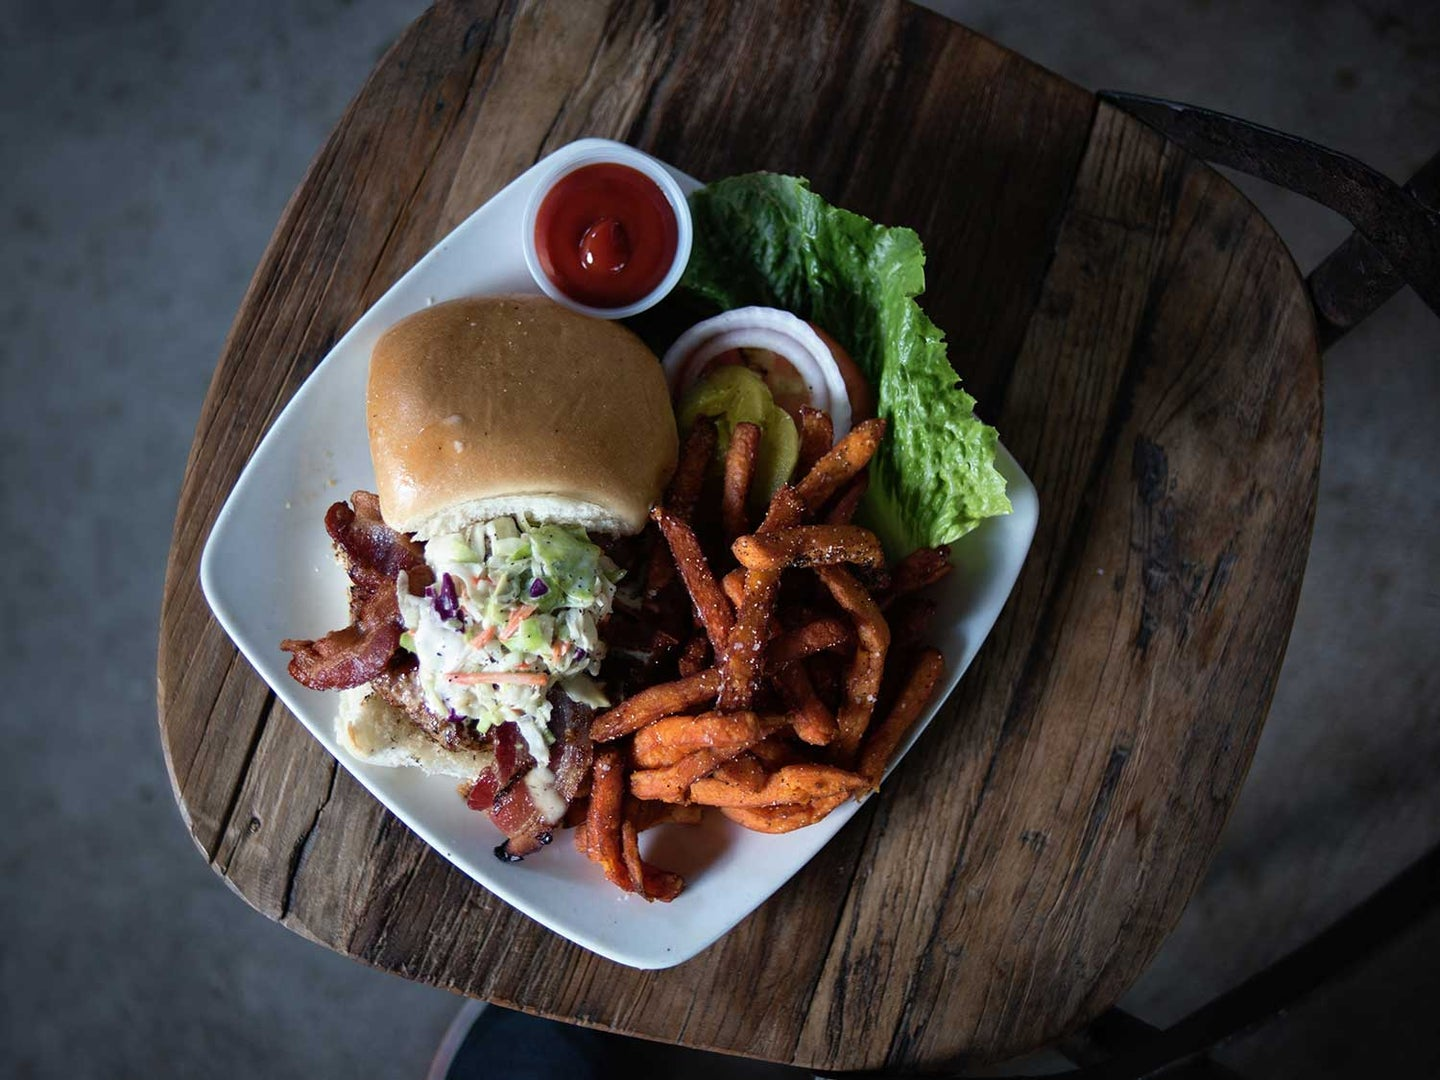 Burger and fries on plate on TV tray.